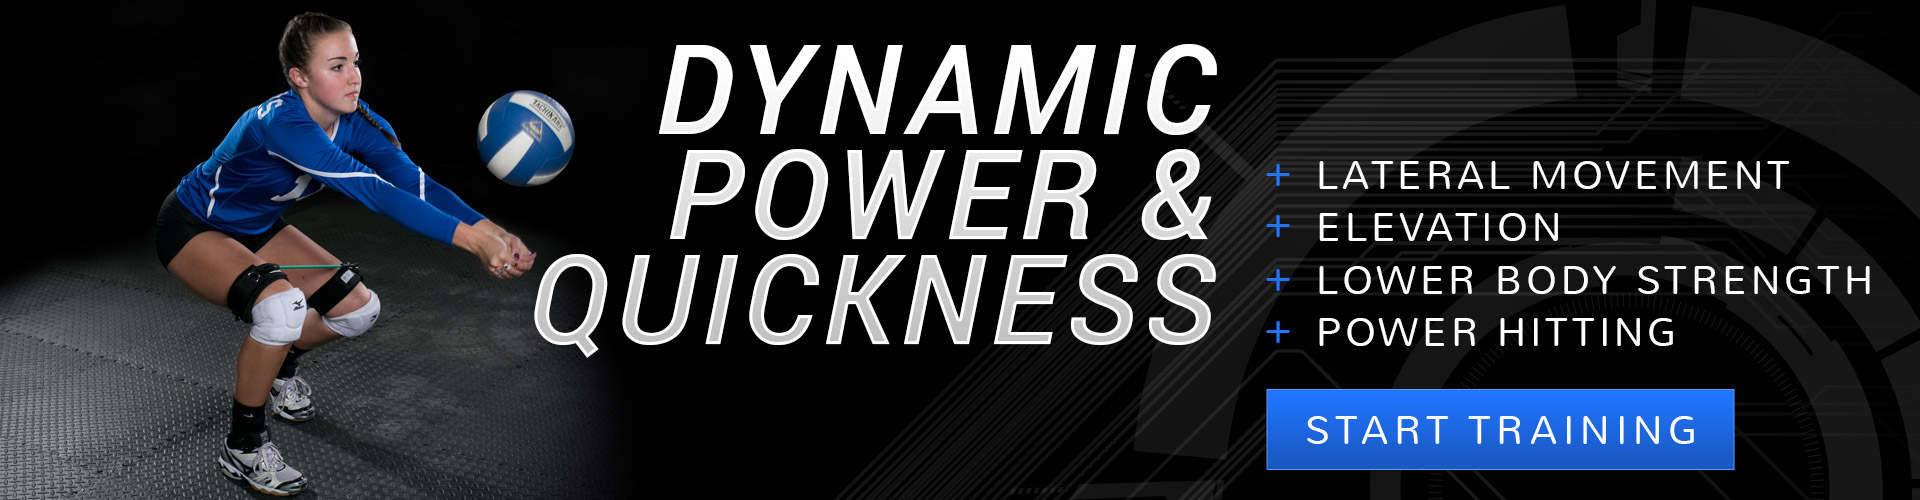 Dynamic Power & Quickness in Volleyball: +Lateral Movement +Elevation +Lower Body Strength + Power Hitting - Start Training